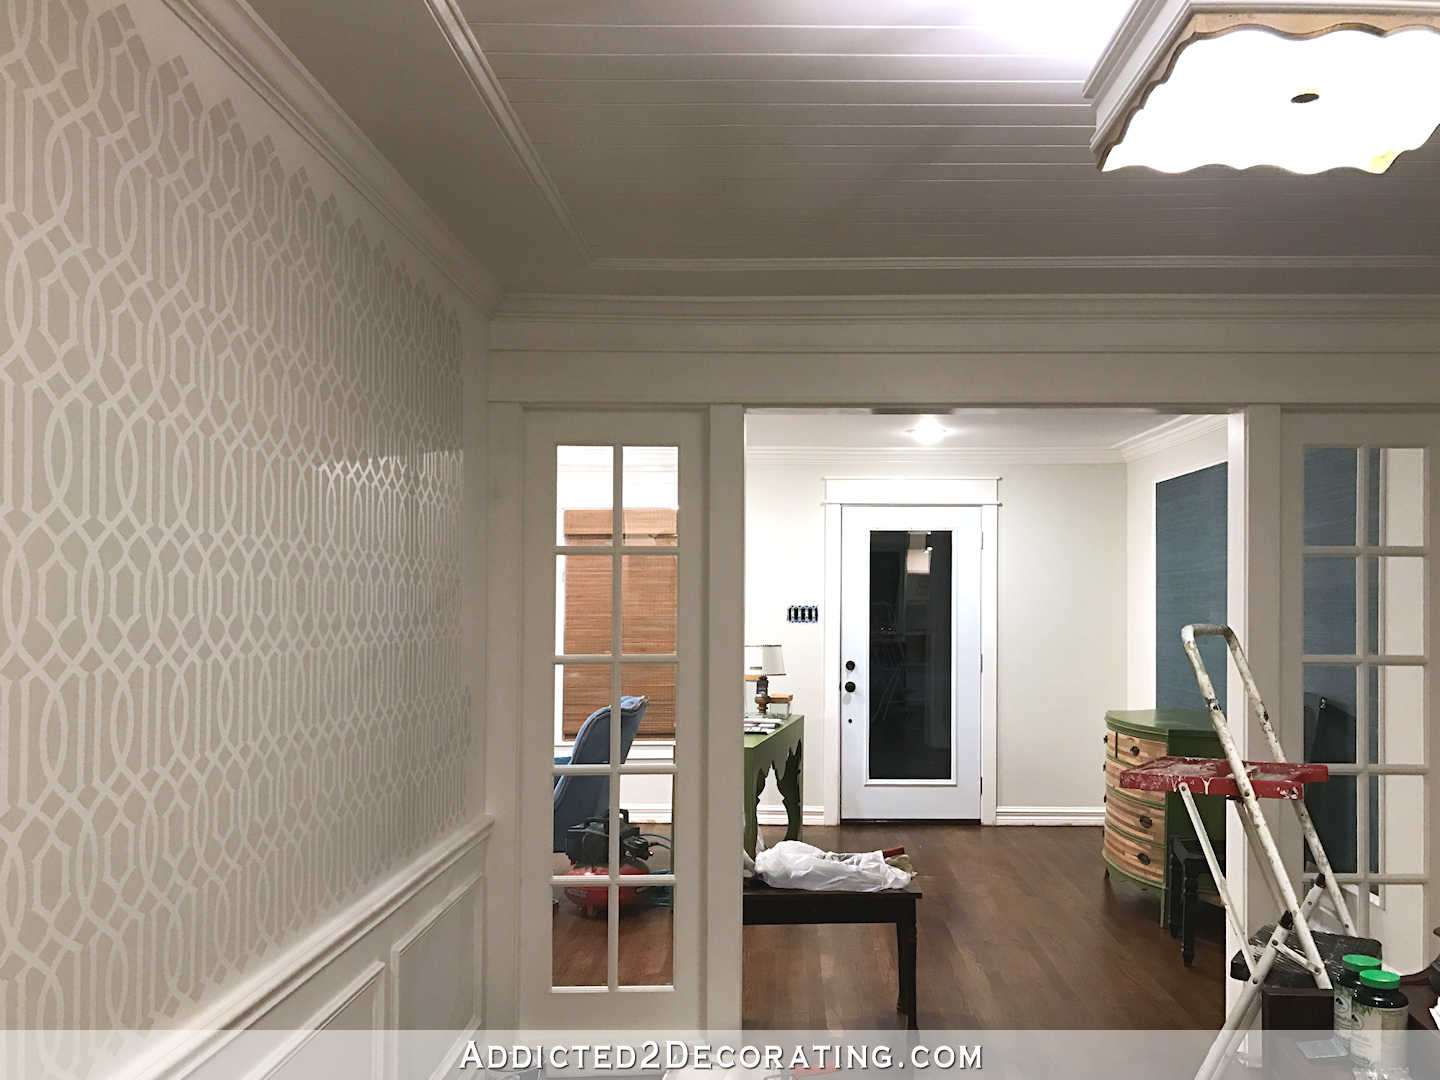 stenciled trellis design in Behr Polar Bear and Benjamin Moore Classic Gray on music room walls - 8